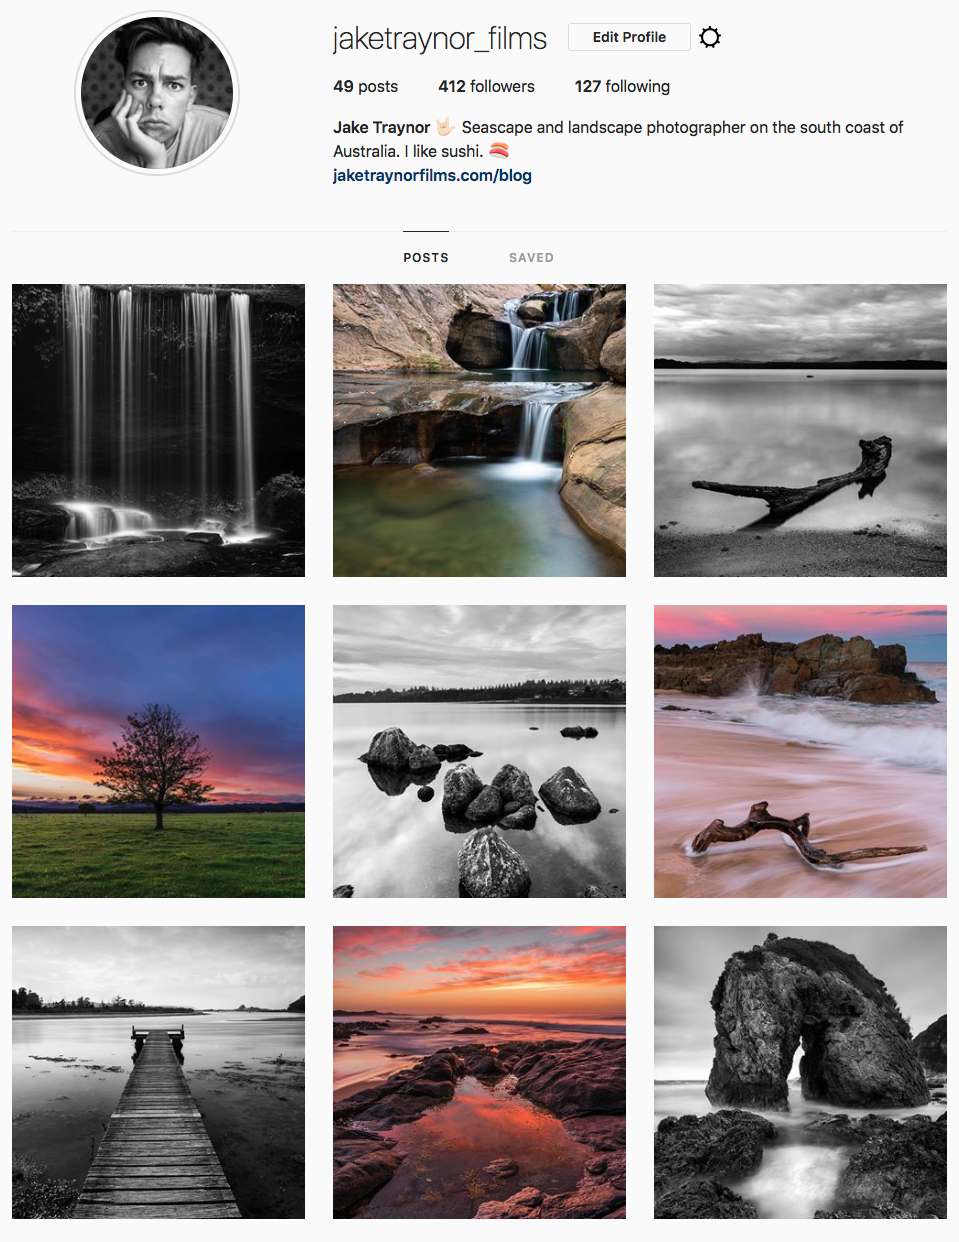 A snapshot of my Instagram page as of today.